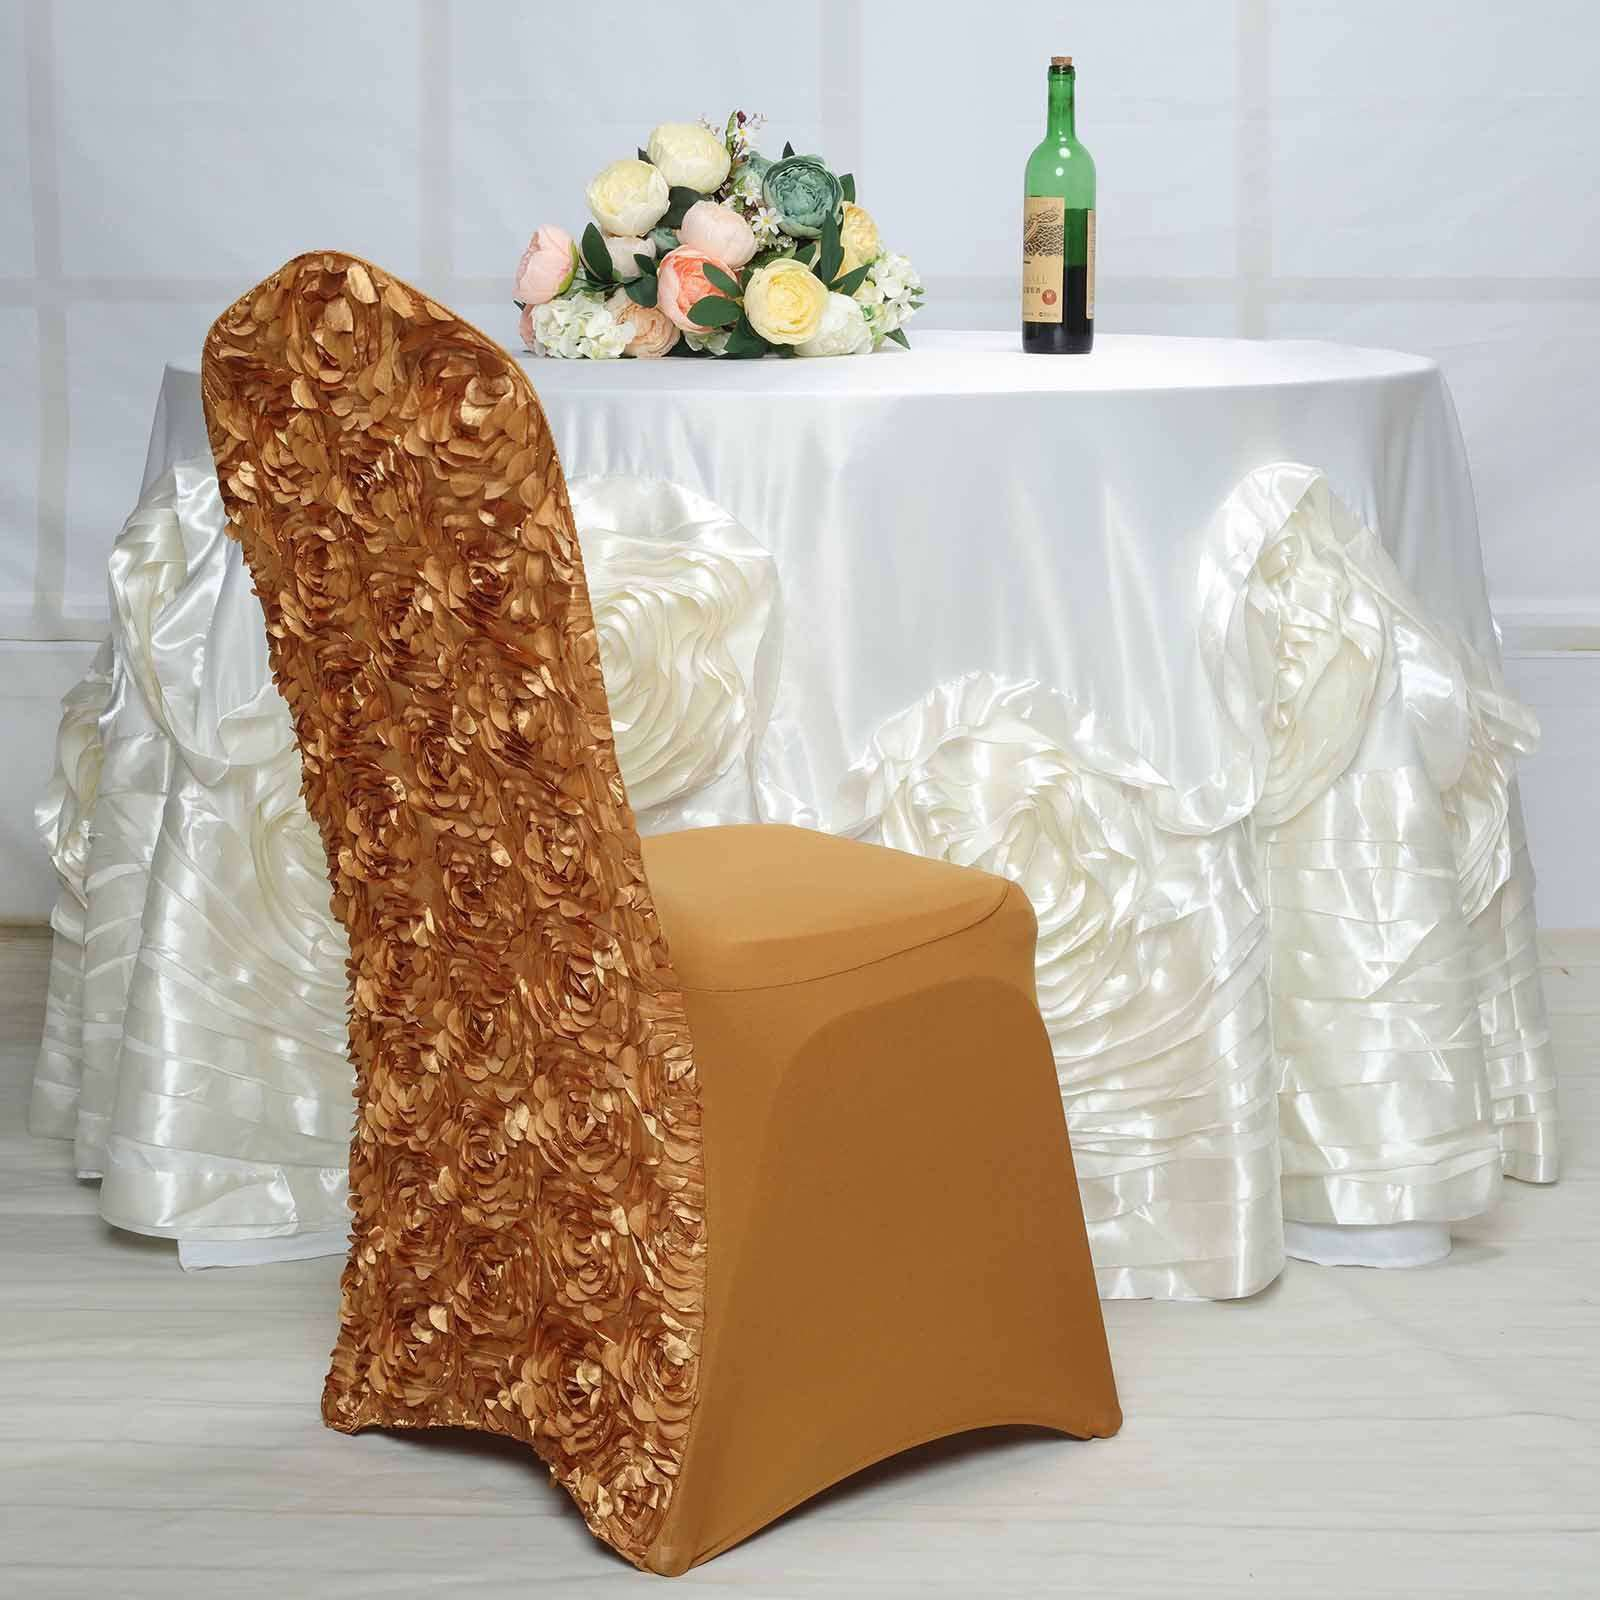 Incredible Satin Rosette Gold Stretch Banquet Spandex Chair Cover Chaircoverfactory Machost Co Dining Chair Design Ideas Machostcouk